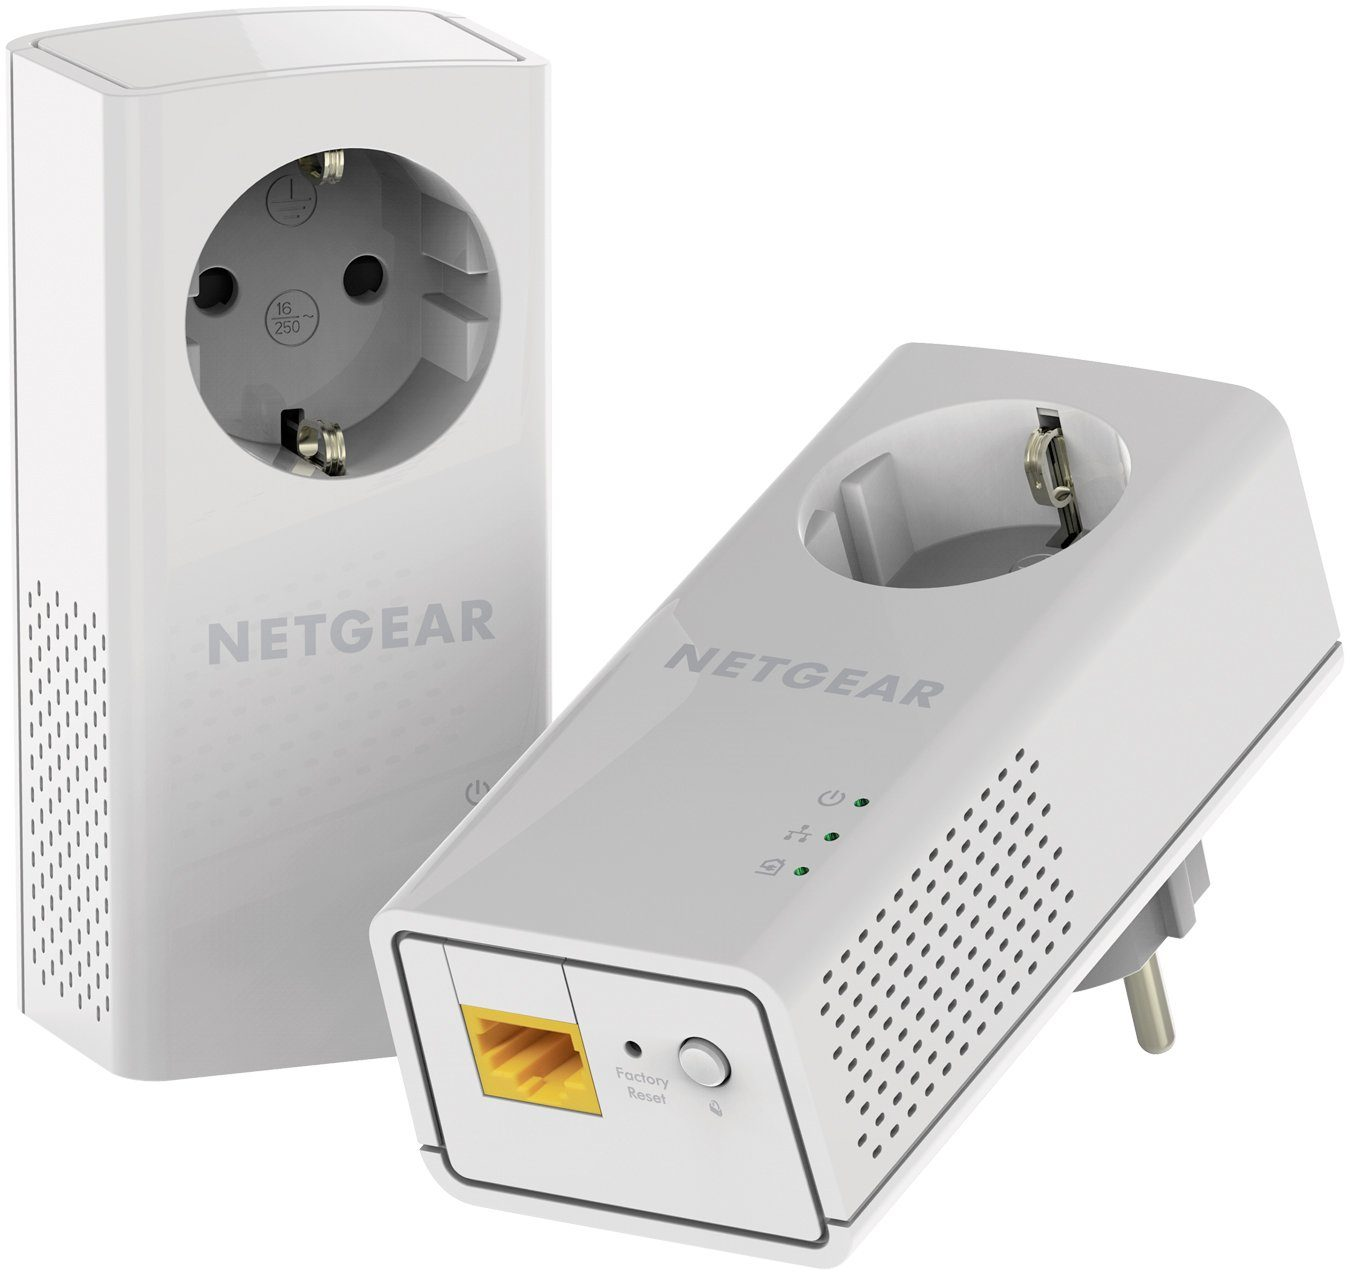 Netgear Powerline Adapter »POWERLINE 1200 ADAPTER SET«